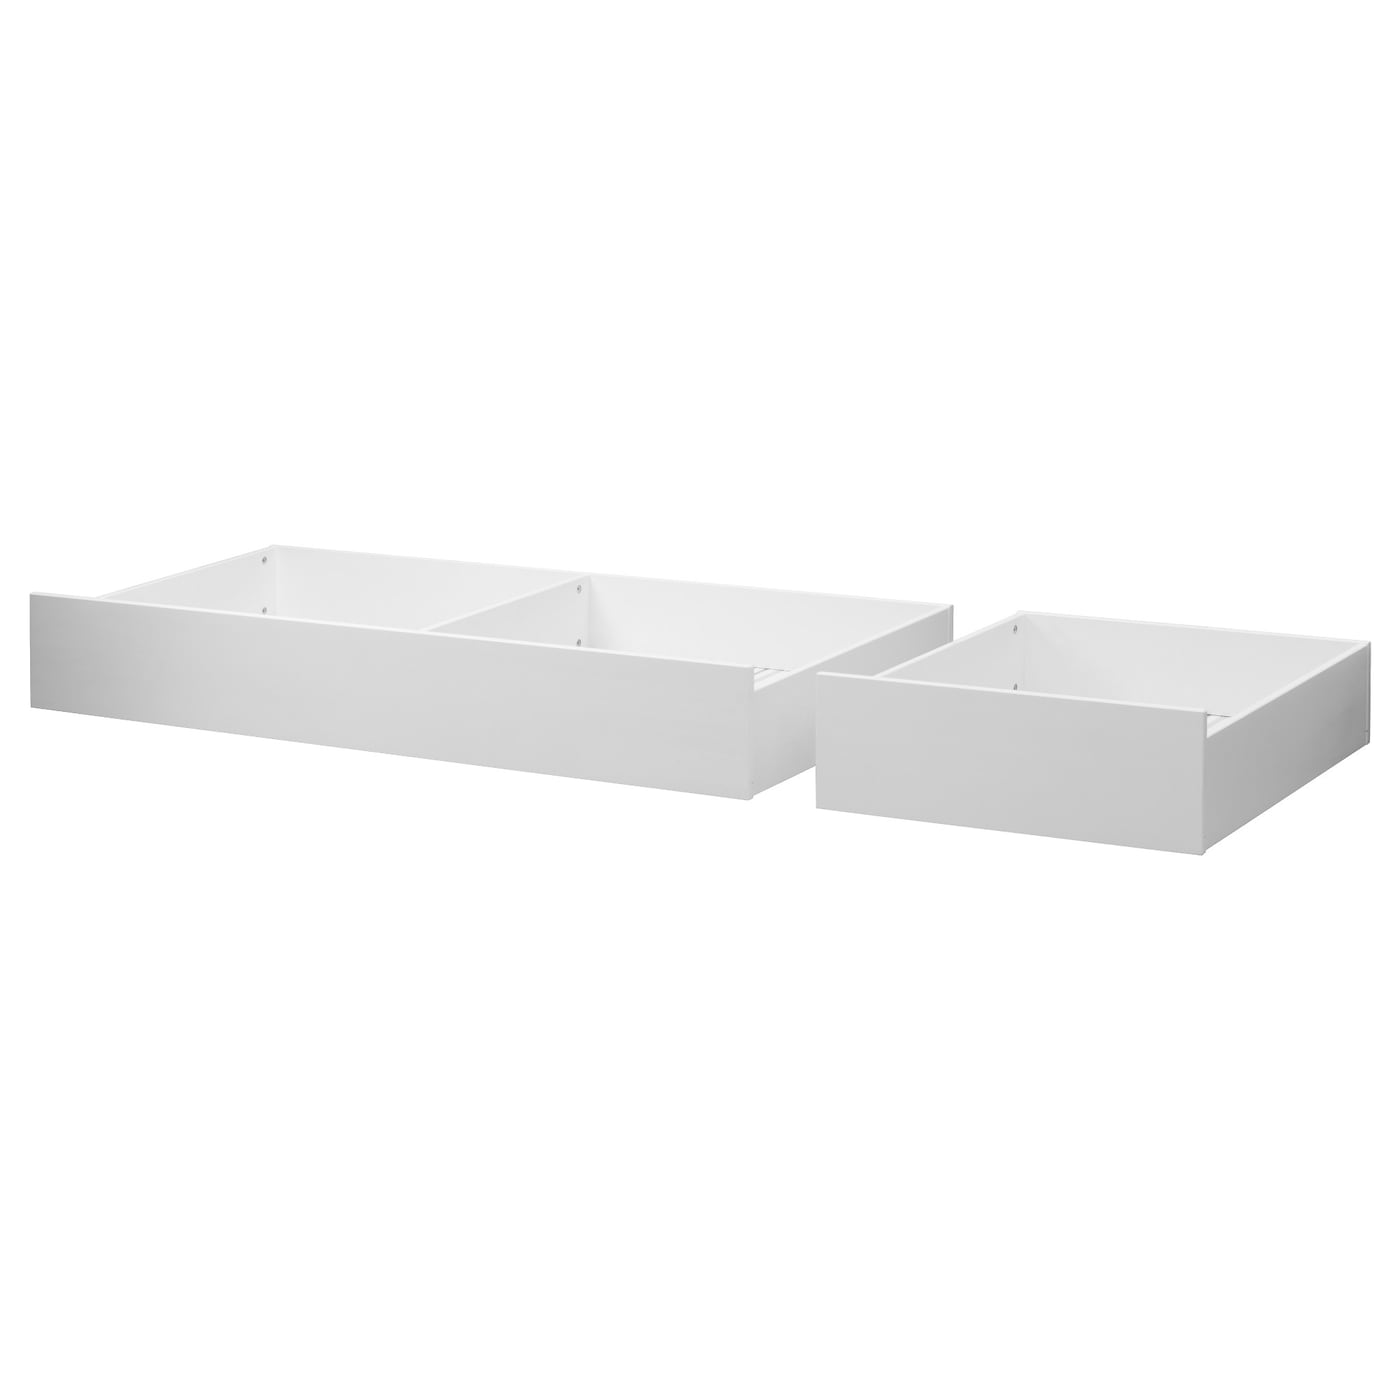 Verbazingwekkend HEMNES Underbed storage box, set of 2 - white stain, Twin/Full - IKEA FY-42